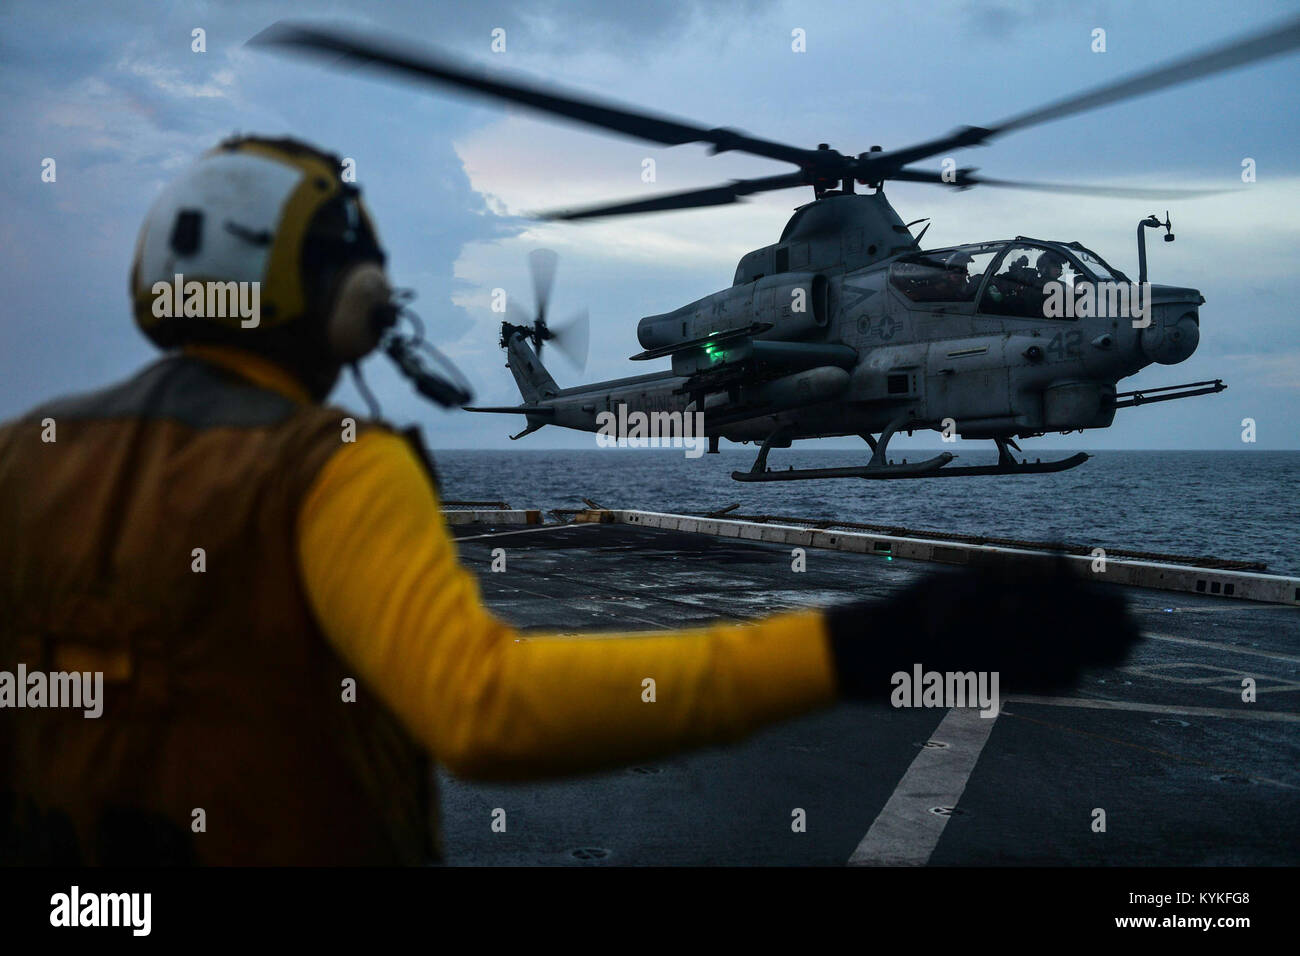 INDIAN OCEAN (Dec. 30, 2017) Aviation Boatswain Mate (Handling) Airman Ryan Sharland, directs a AH-1Z Viper attack helicopter, assigned to Marine Medium Tiltrotor Squadron (VMM) 161 (Reinforced), on the flight deck of the amphibious transport dock ship USS San Diego (LPD 22). San Diego, part of the America Amphibious Ready Group, with embarked 15th Marine Expeditionary Unit, is operating in the Indo-Asia-Pacific region to strengthen partnerships and serve as a ready-response force for any type of contingency. (U.S. Navy photo by Mass Communication Specialist 3rd Class Justin A. Schoenberger/Re Stock Photo